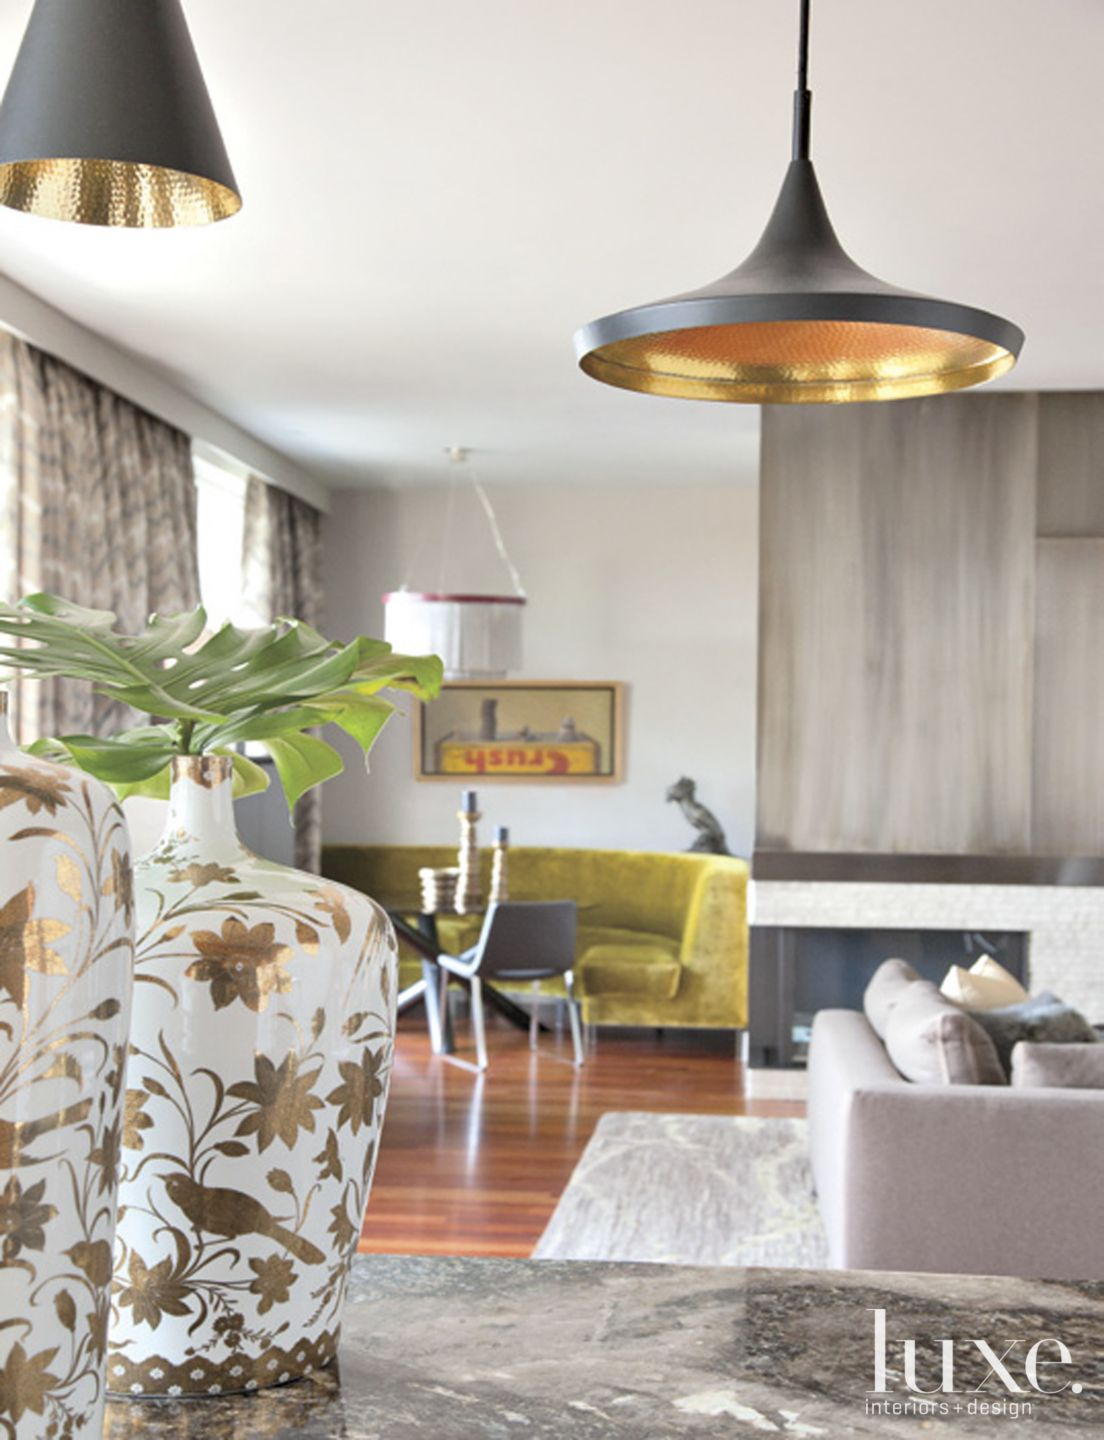 Contemporary Neutral Kitchen Detail with Pendant